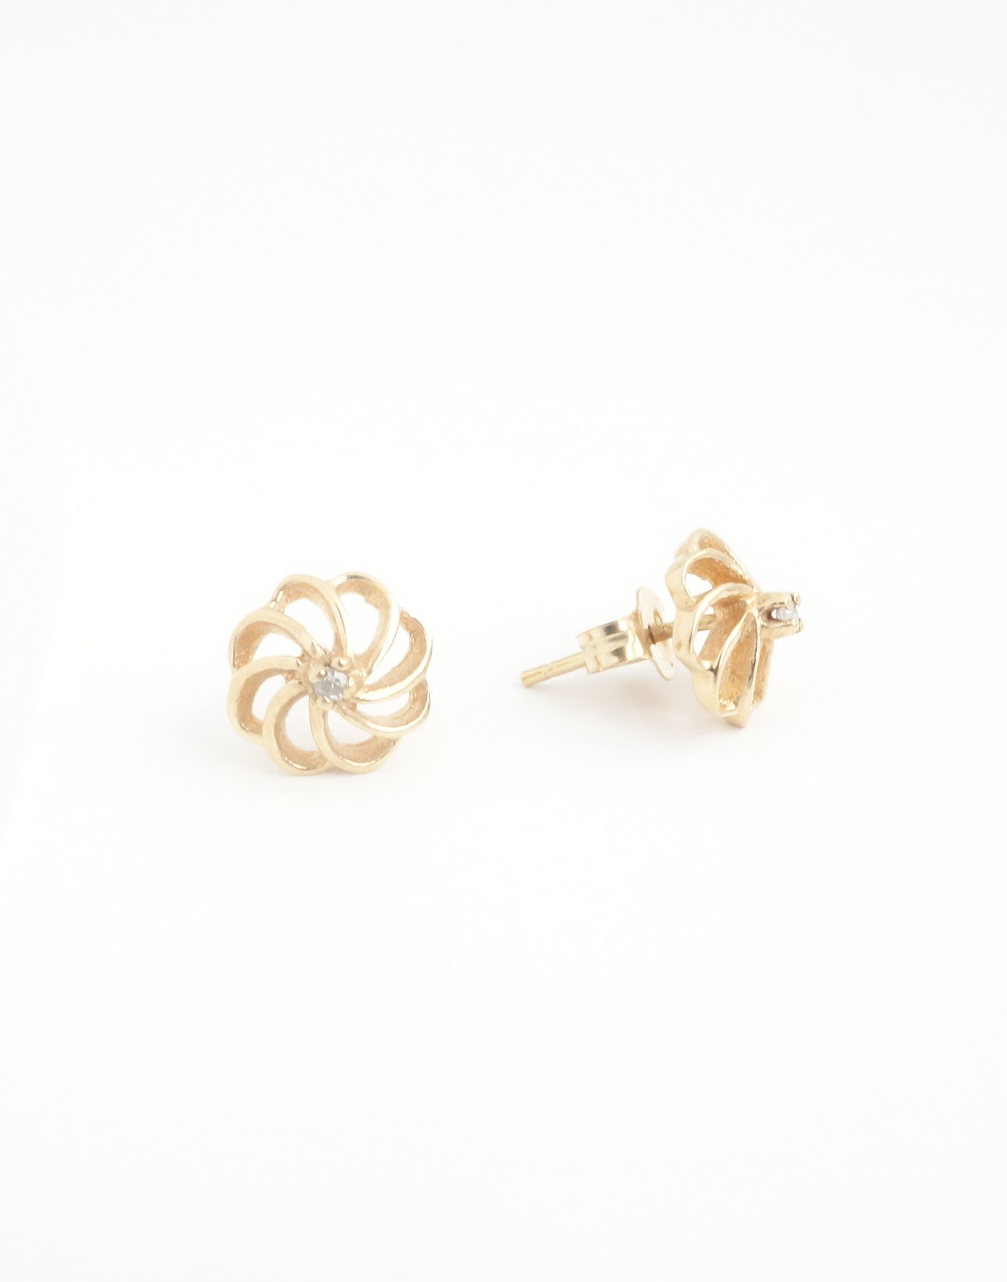 10k stud earrings with diamonds side view